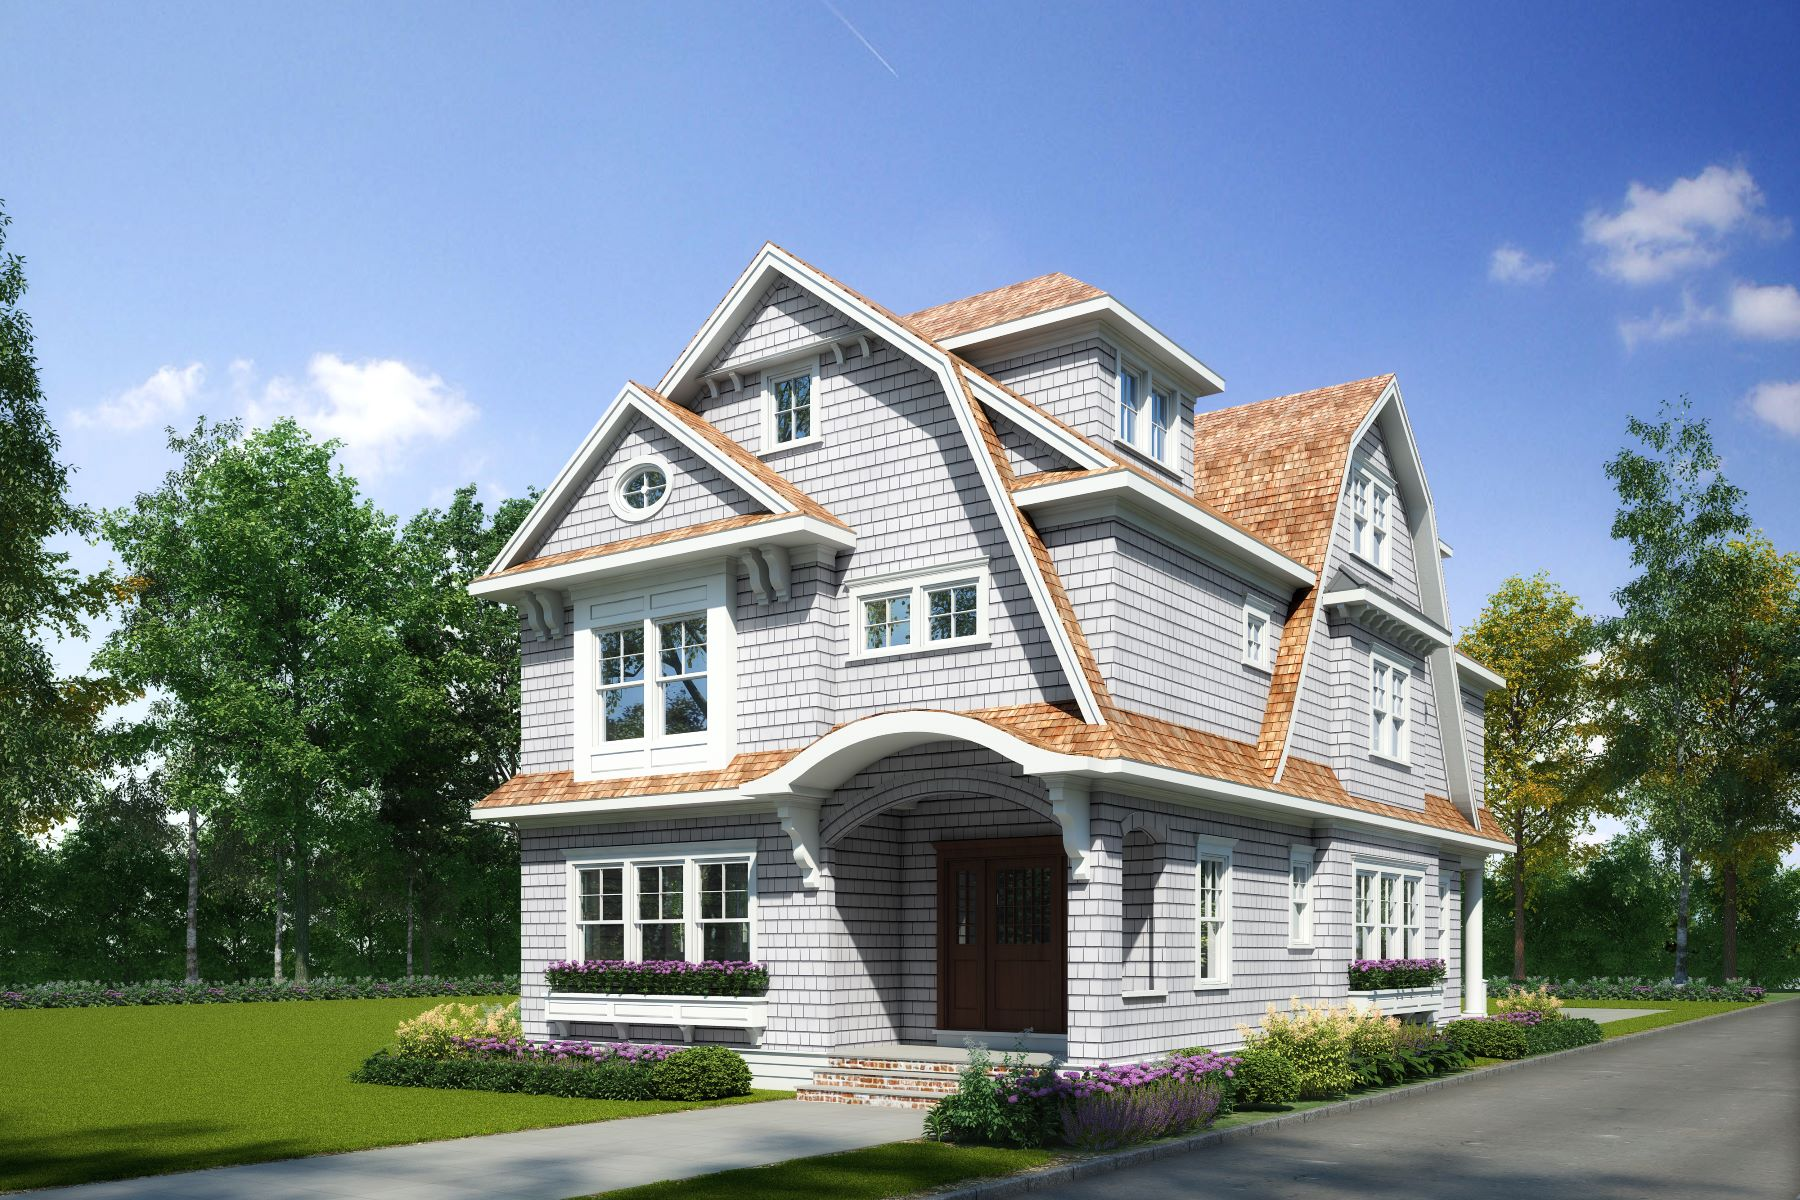 Single Family Homes for Sale at New Construction in Sea Girt 209 Chicago Boulevard Sea Girt, New Jersey 08750 United States